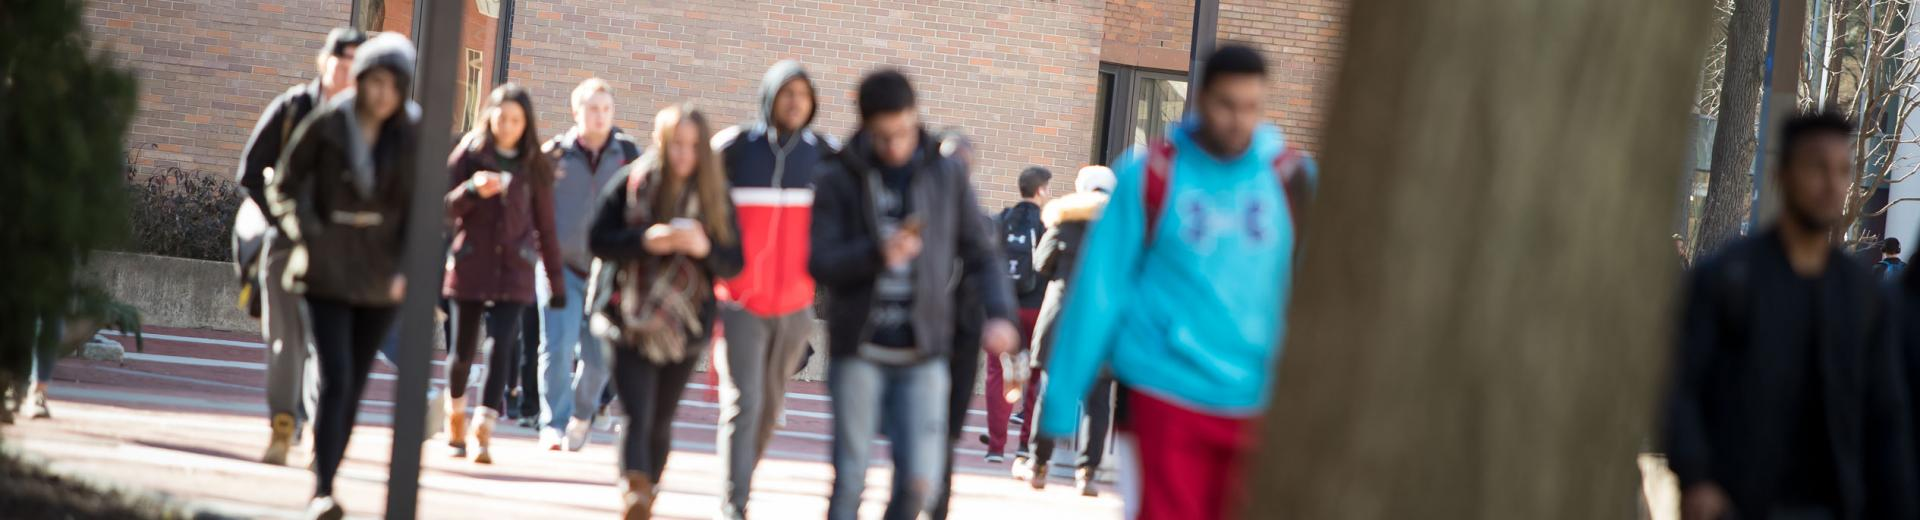 students walking on university campus during a class change